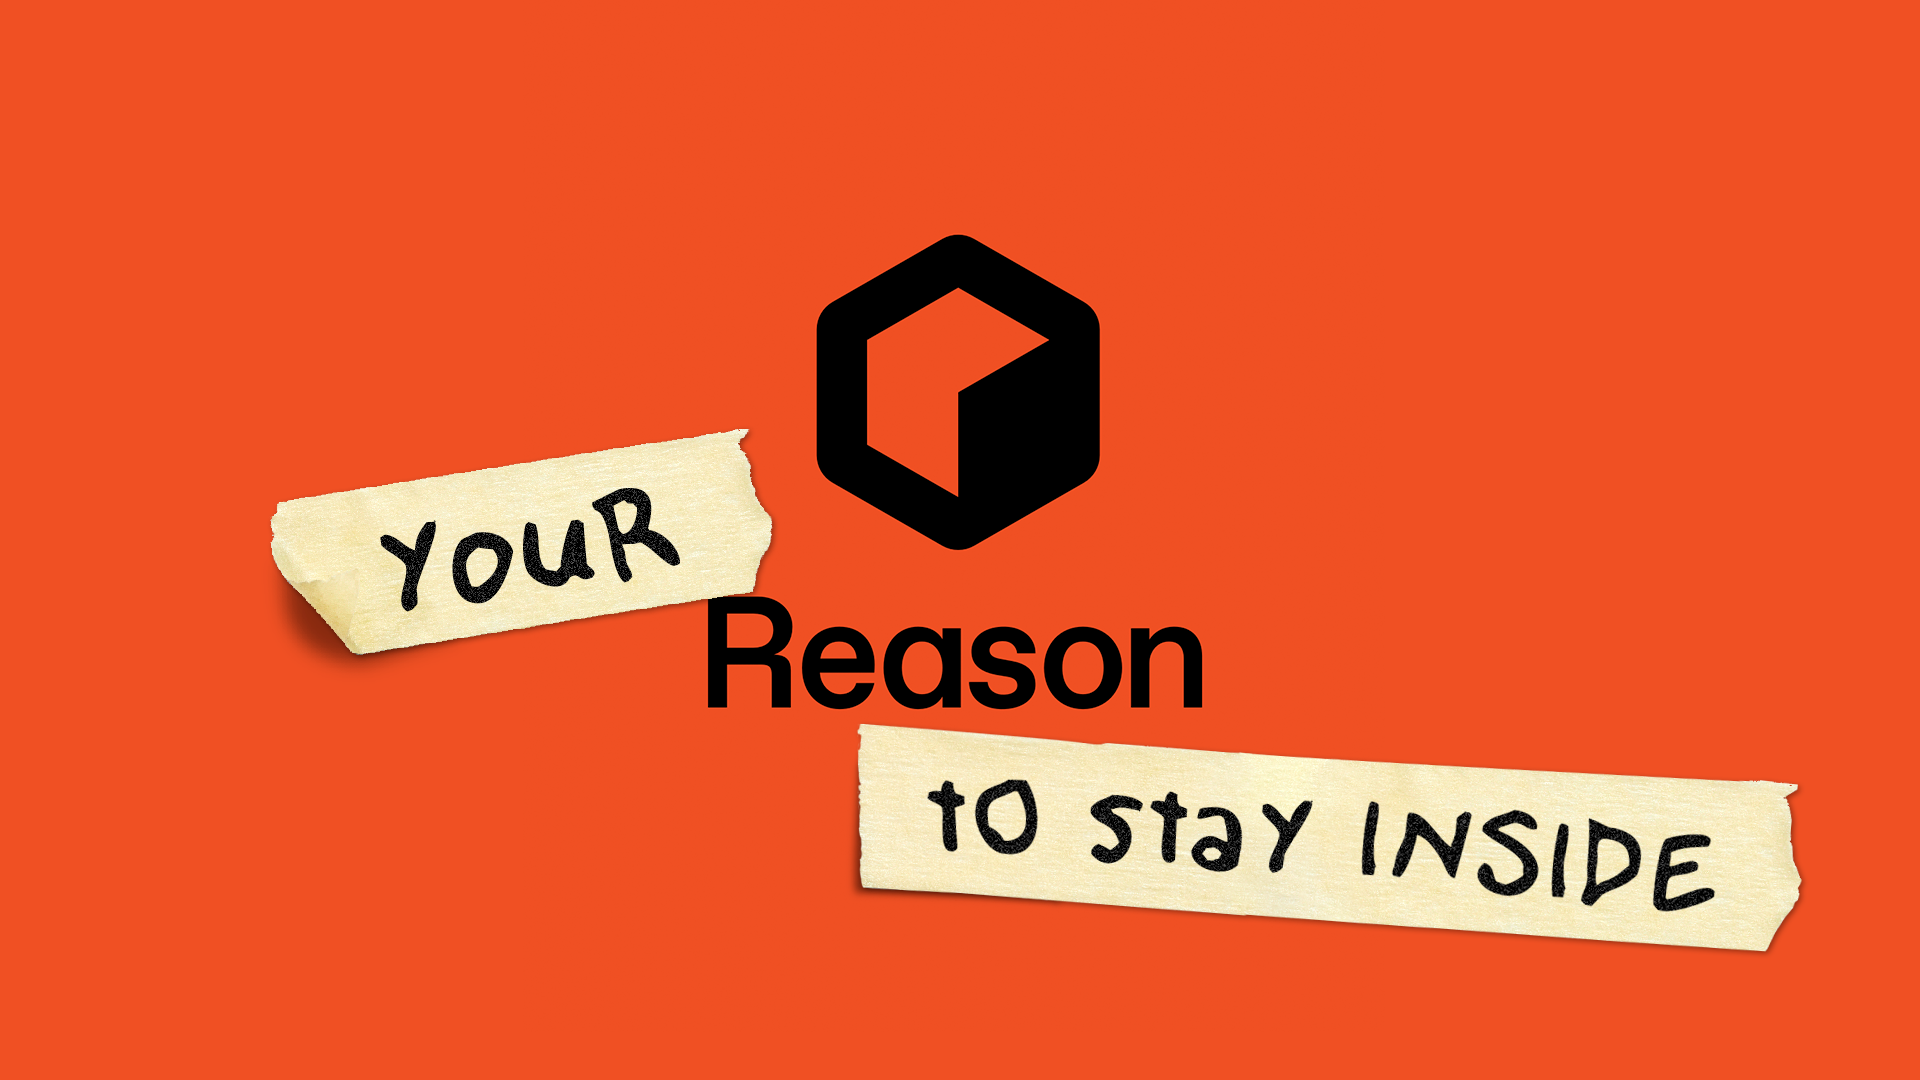 LIVE: Your Reason to Stay Inside